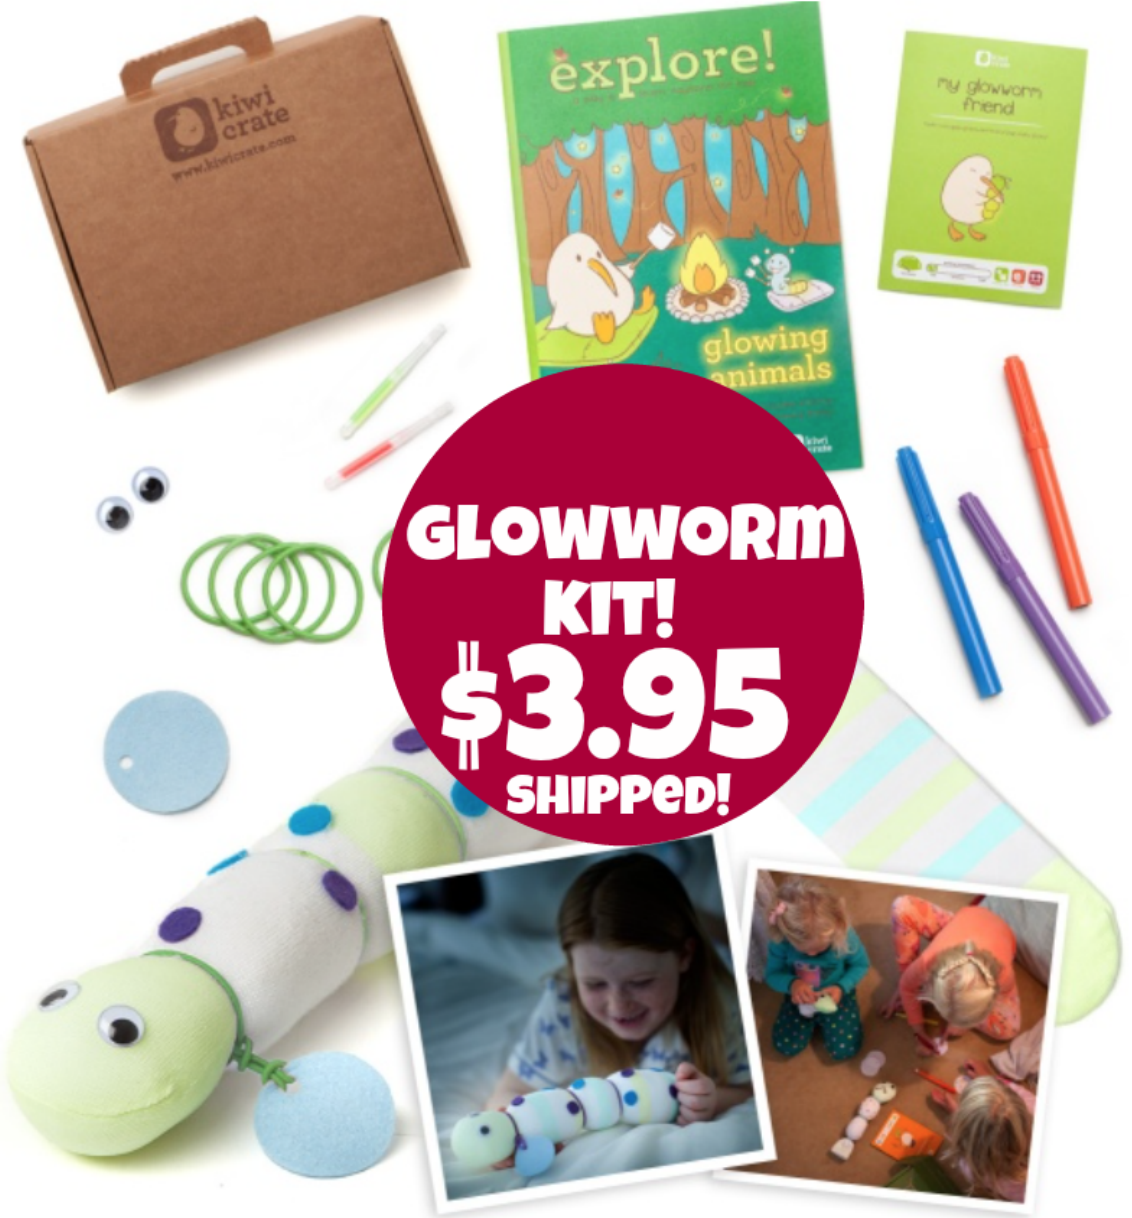 http://www.thebinderladies.com/2015/01/hot-kiwi-crate-my-glowworm-friend-diy.html#.VLBLDYfduyM